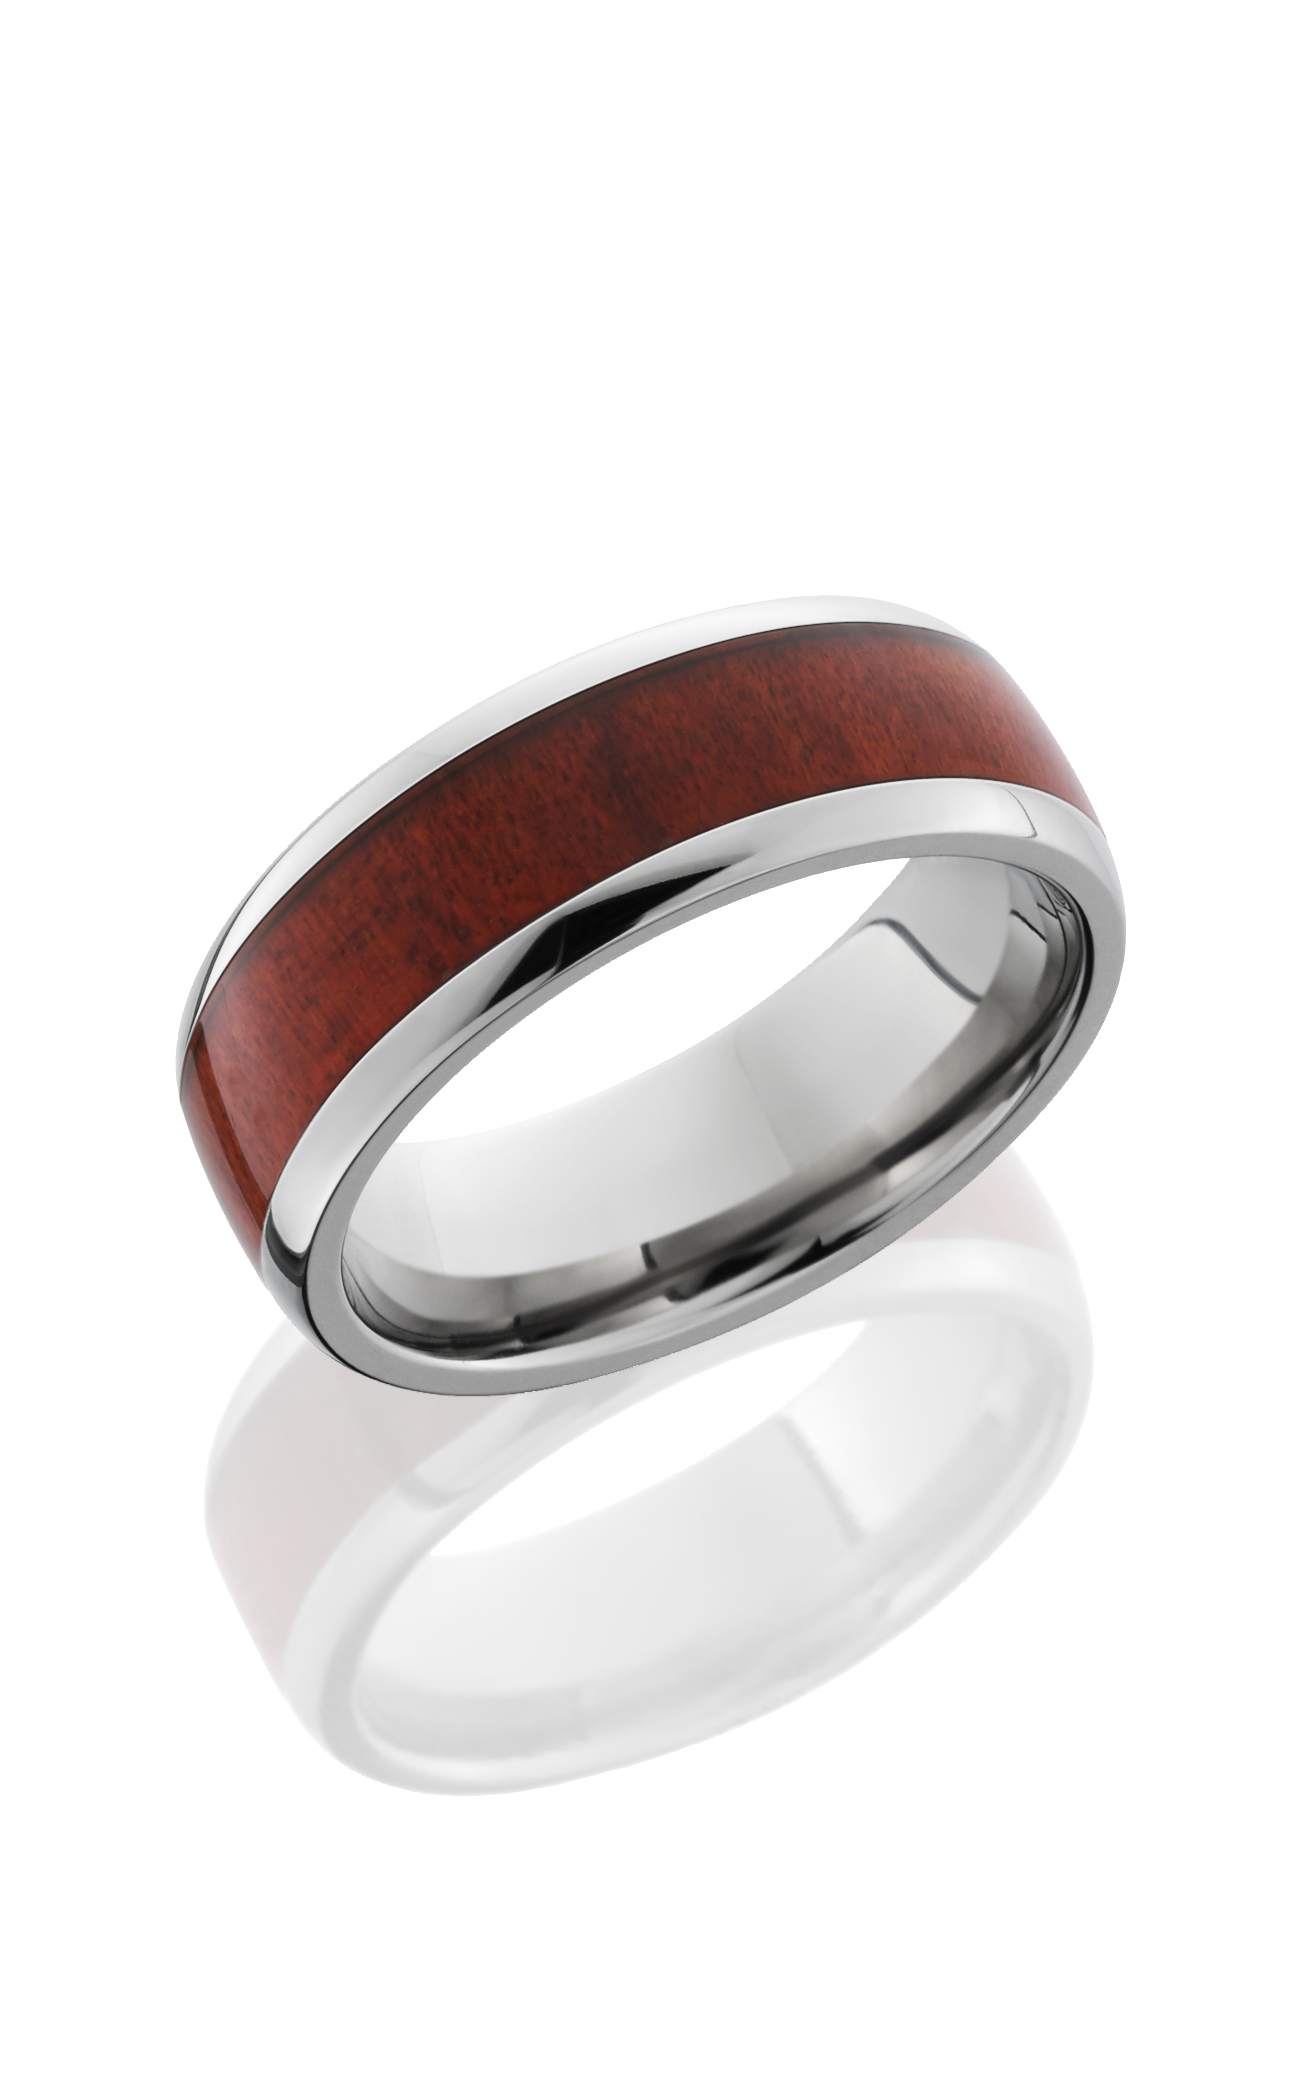 Lashbrook Hardwood Collection Wedding band 90117 product image